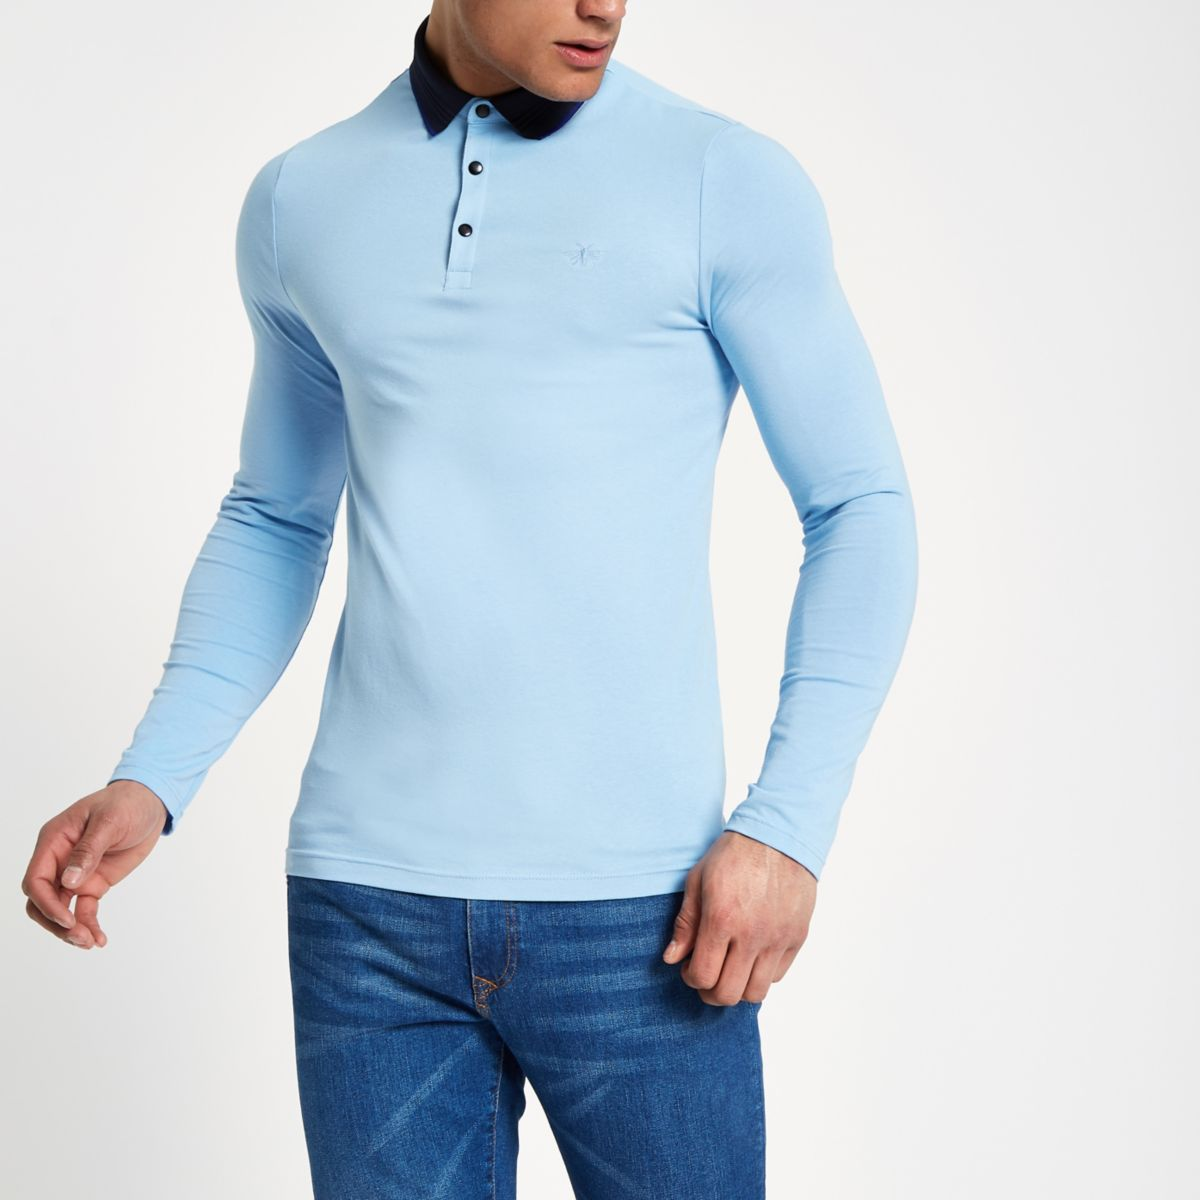 Blue contrast muscle fit polo shirt